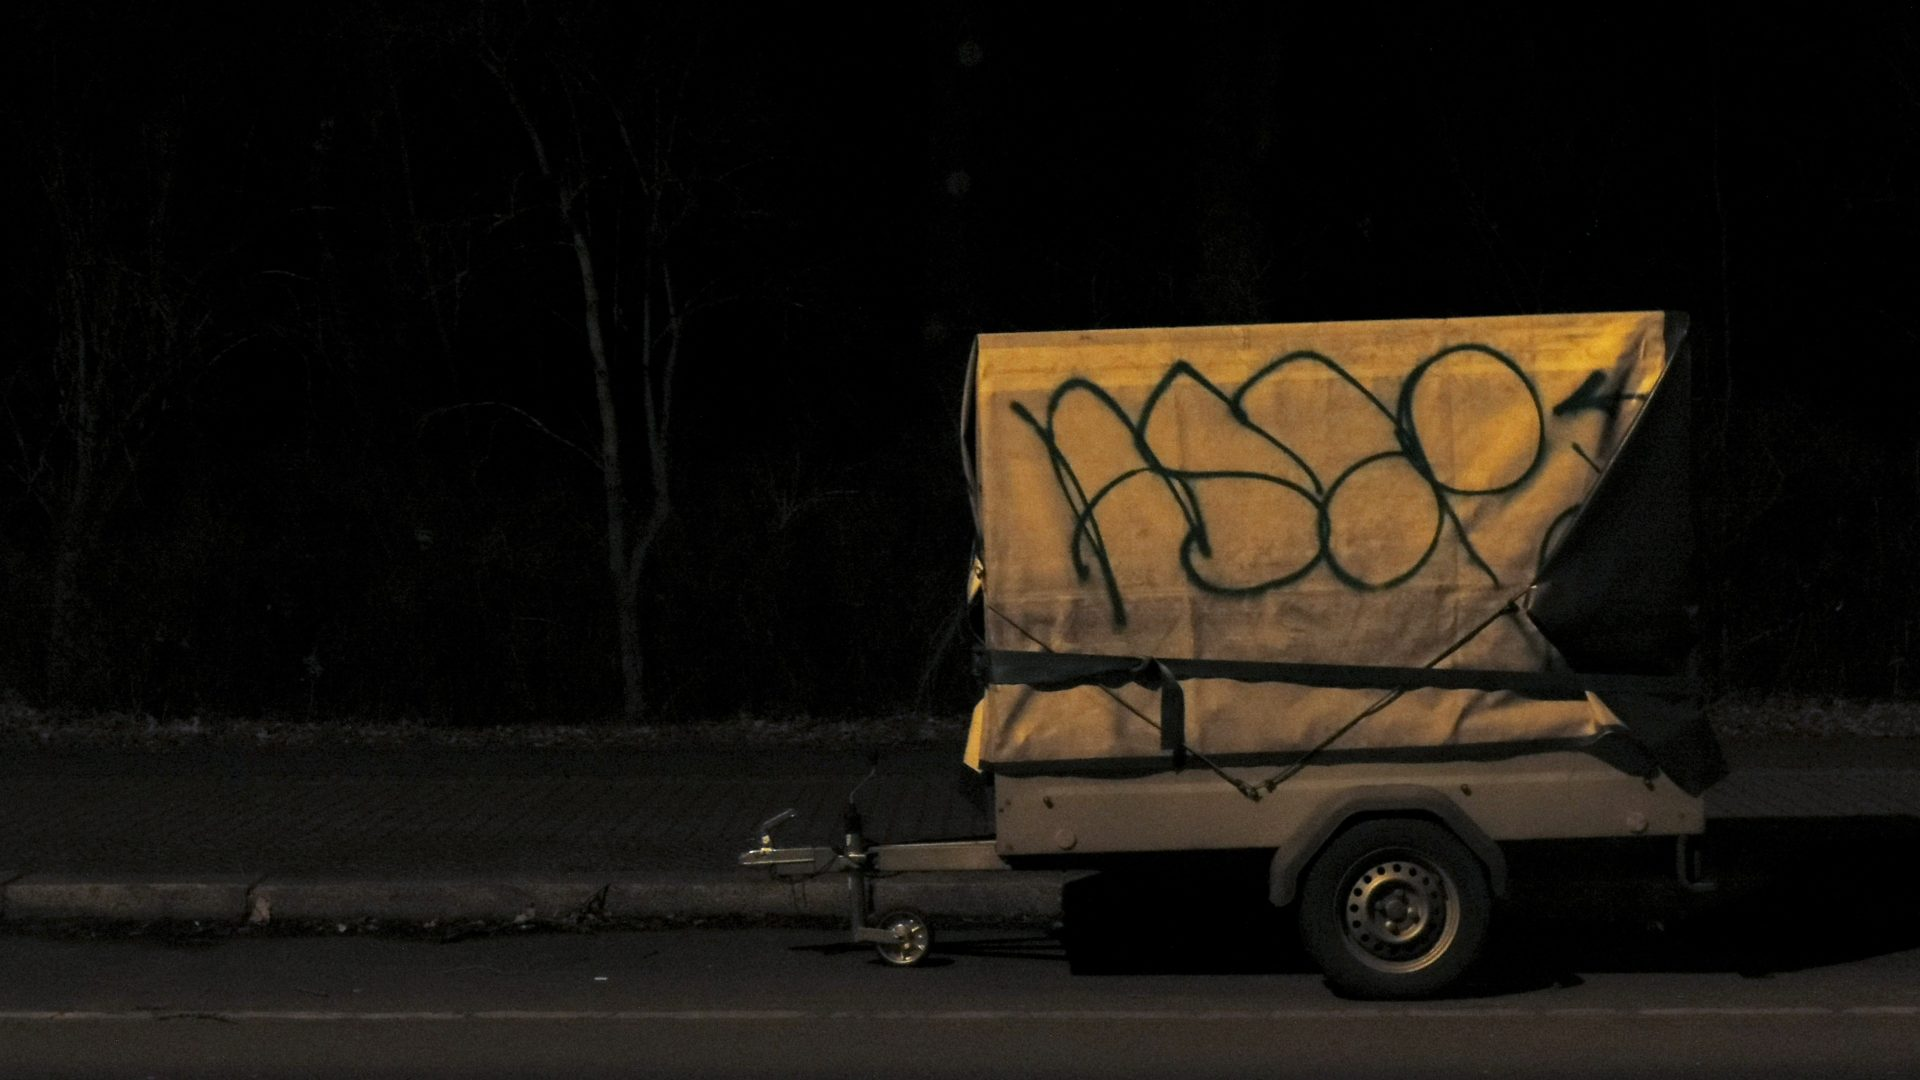 04404 | berliner mauern | berlin, graffiti, night